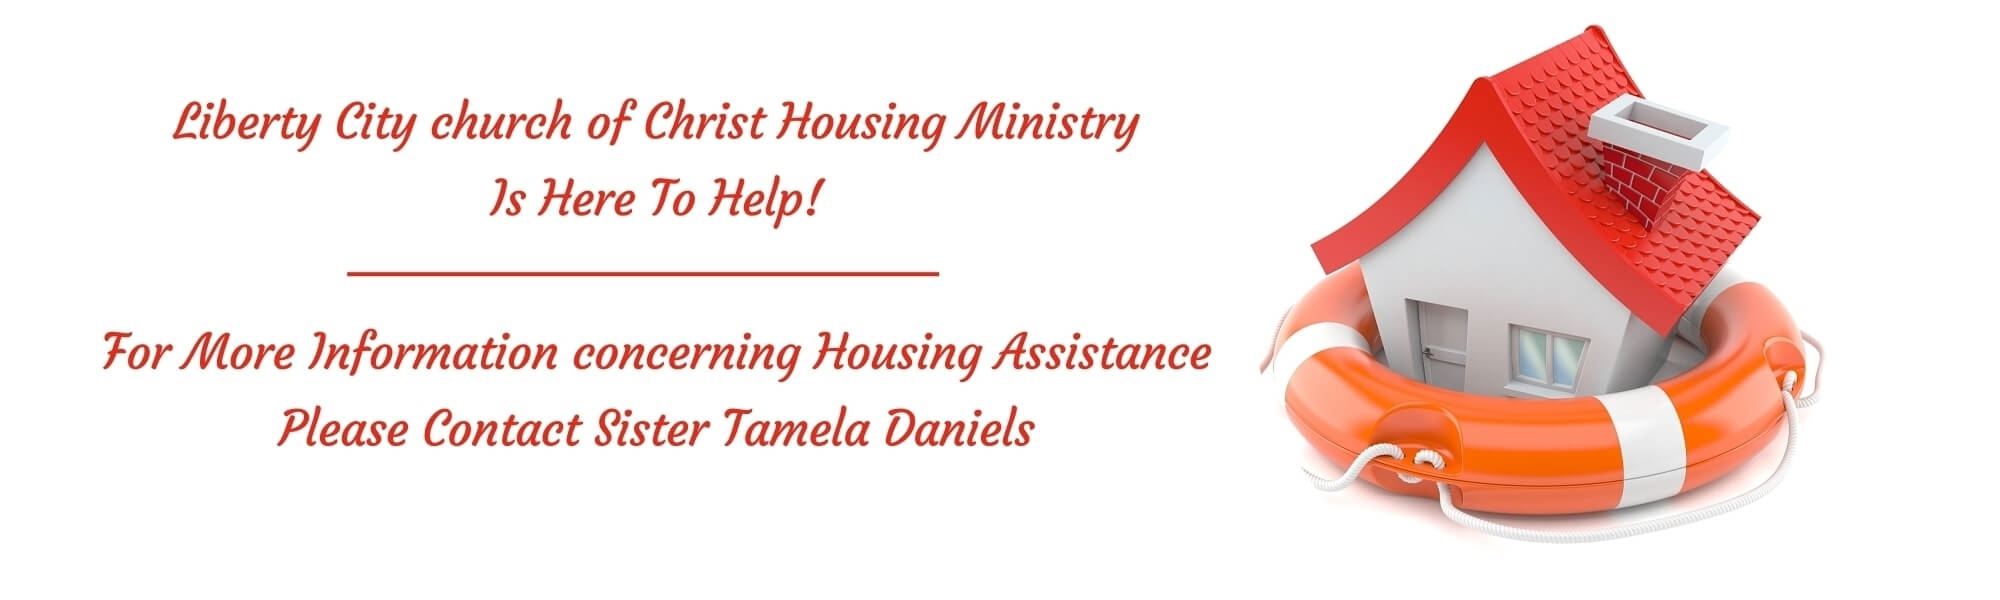 2020housingassistance